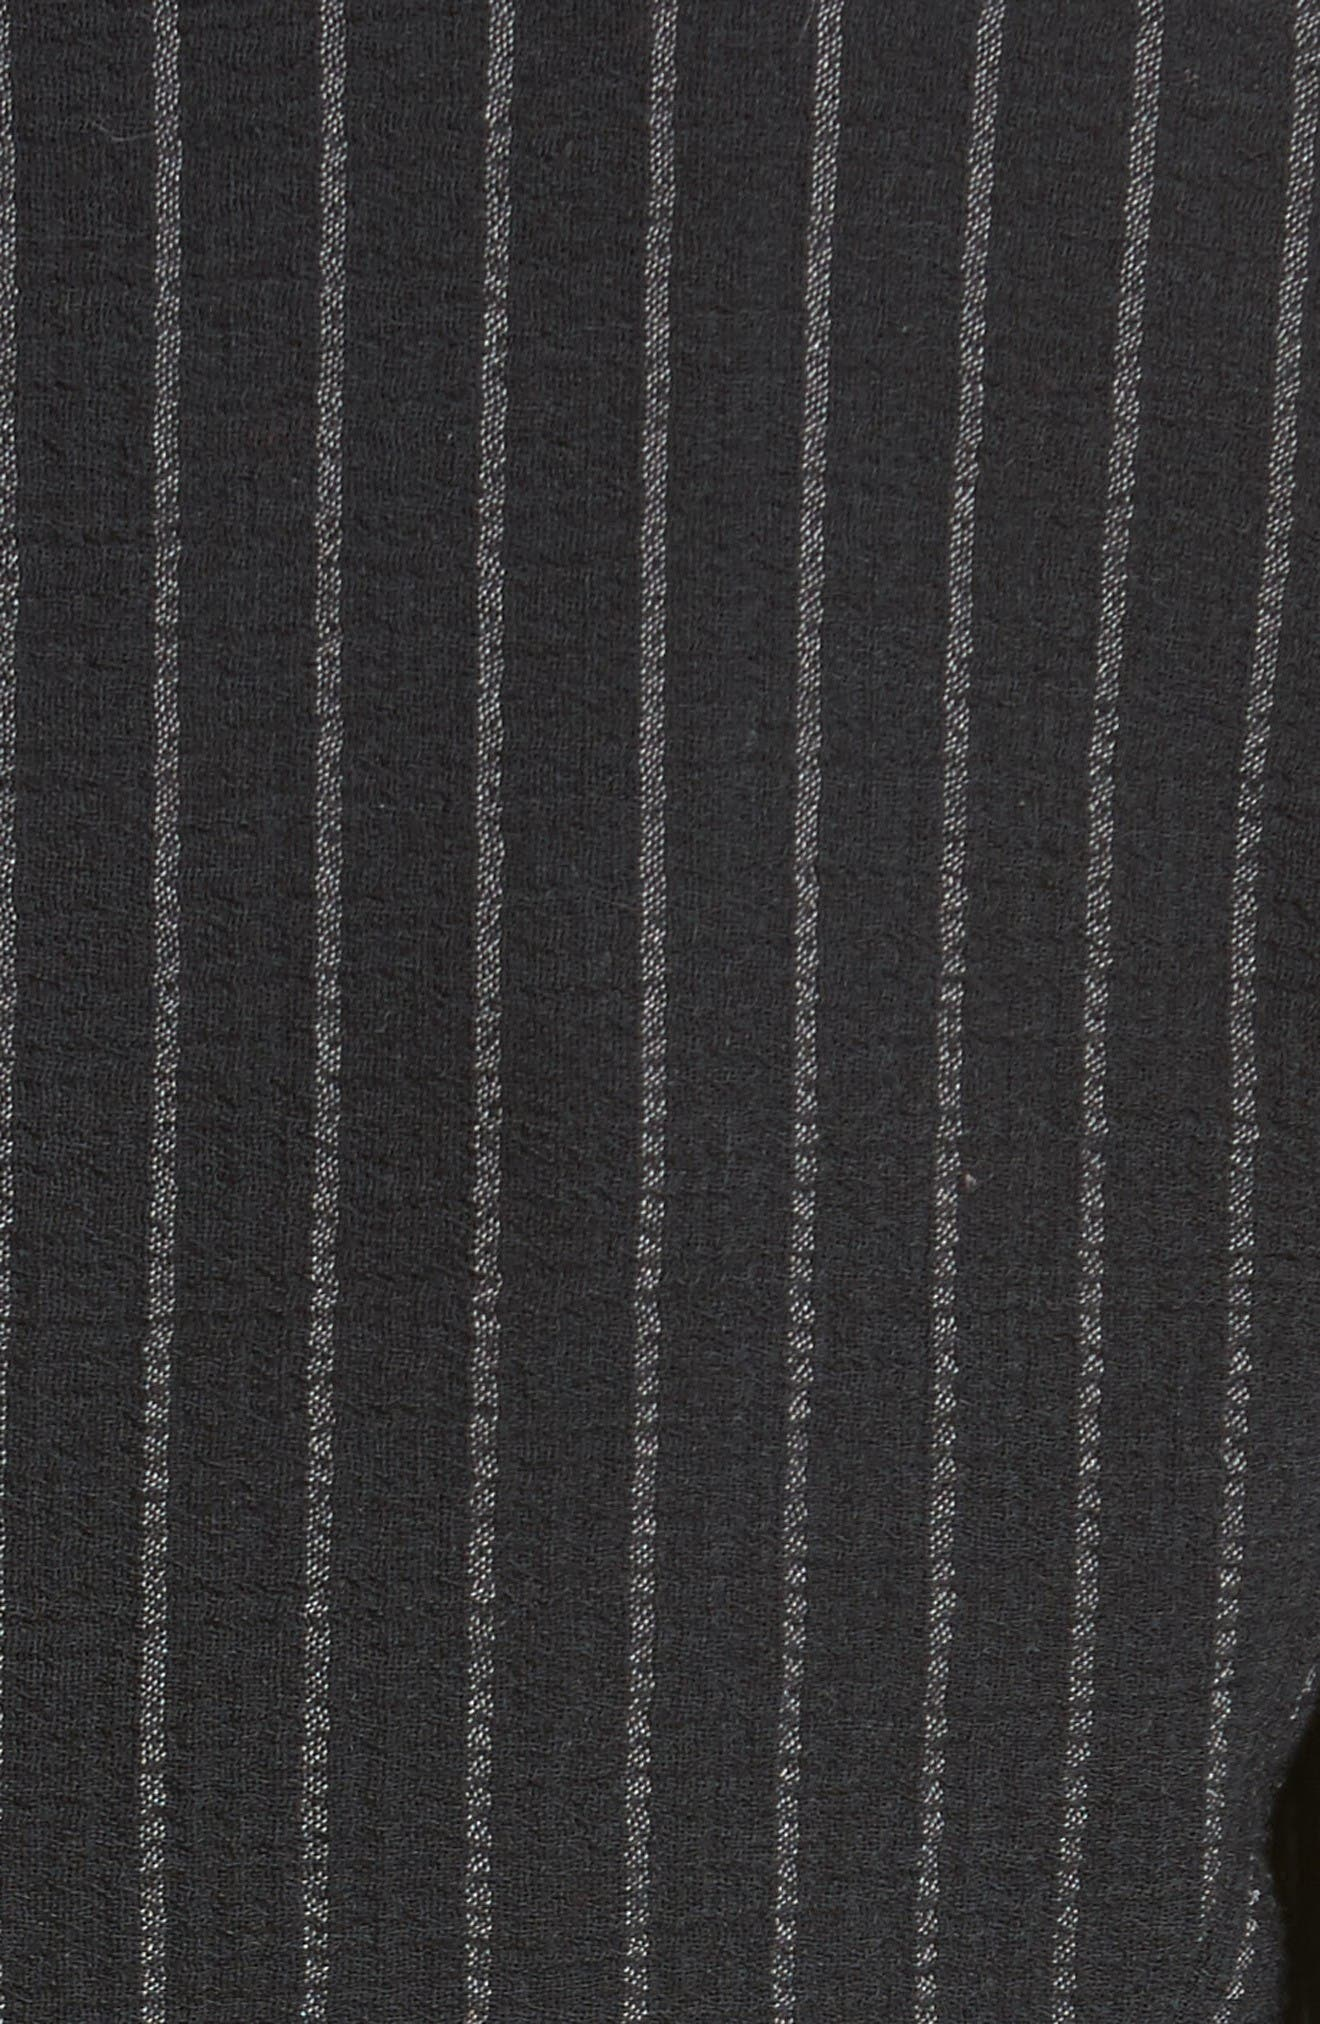 Stretch Wool Pinstripe Jacket,                             Alternate thumbnail 3, color,                             Black Grey Multi